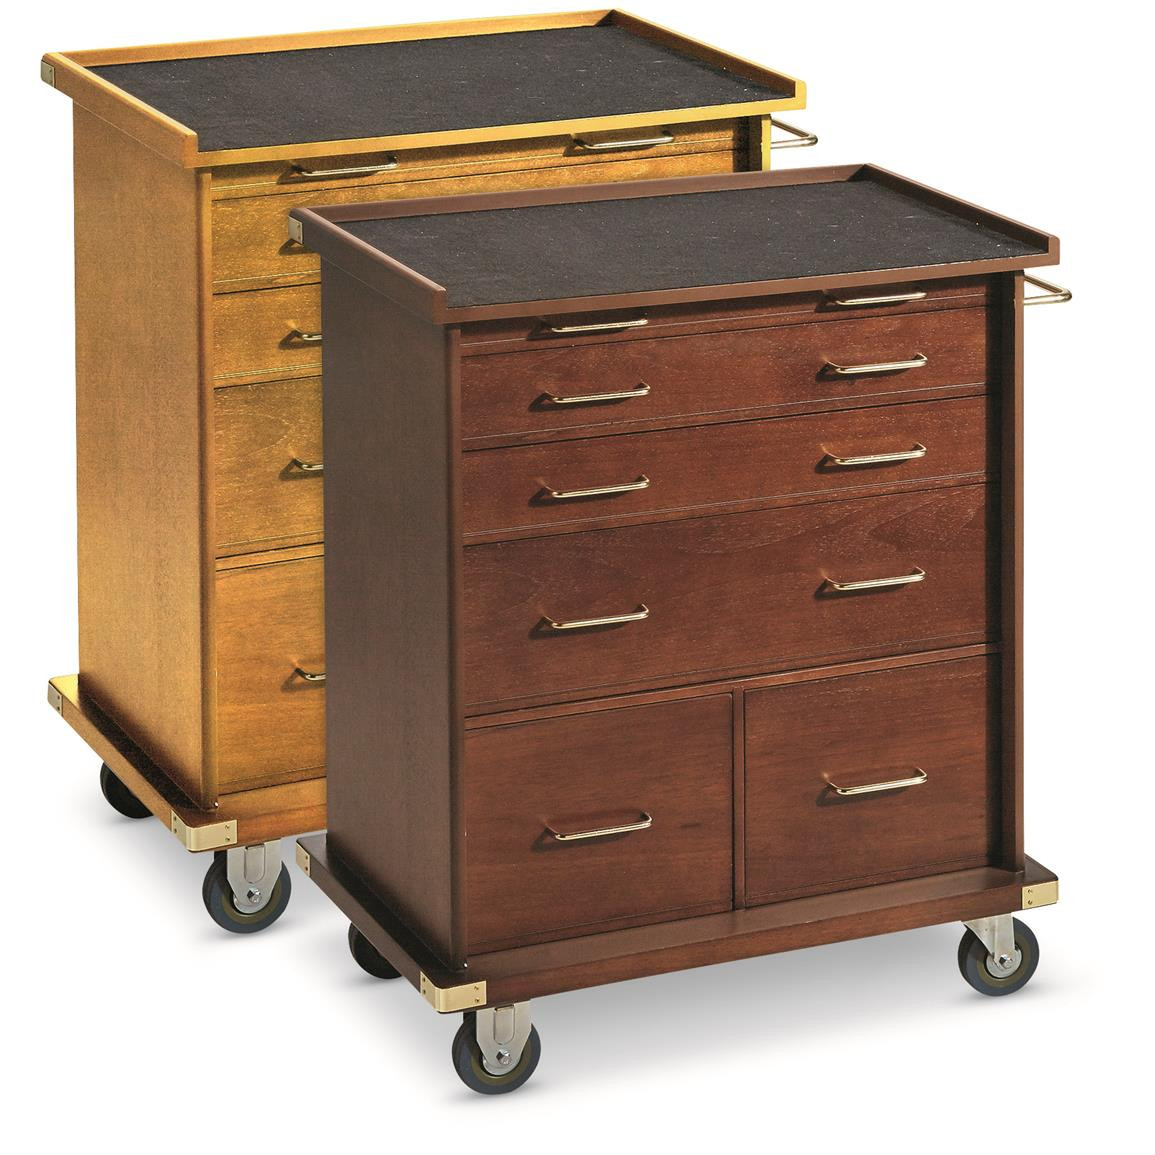 Best ideas about Rolling Storage Cabinet . Save or Pin CASTLECREEK Rolling Storage Cabinet Coins Now.